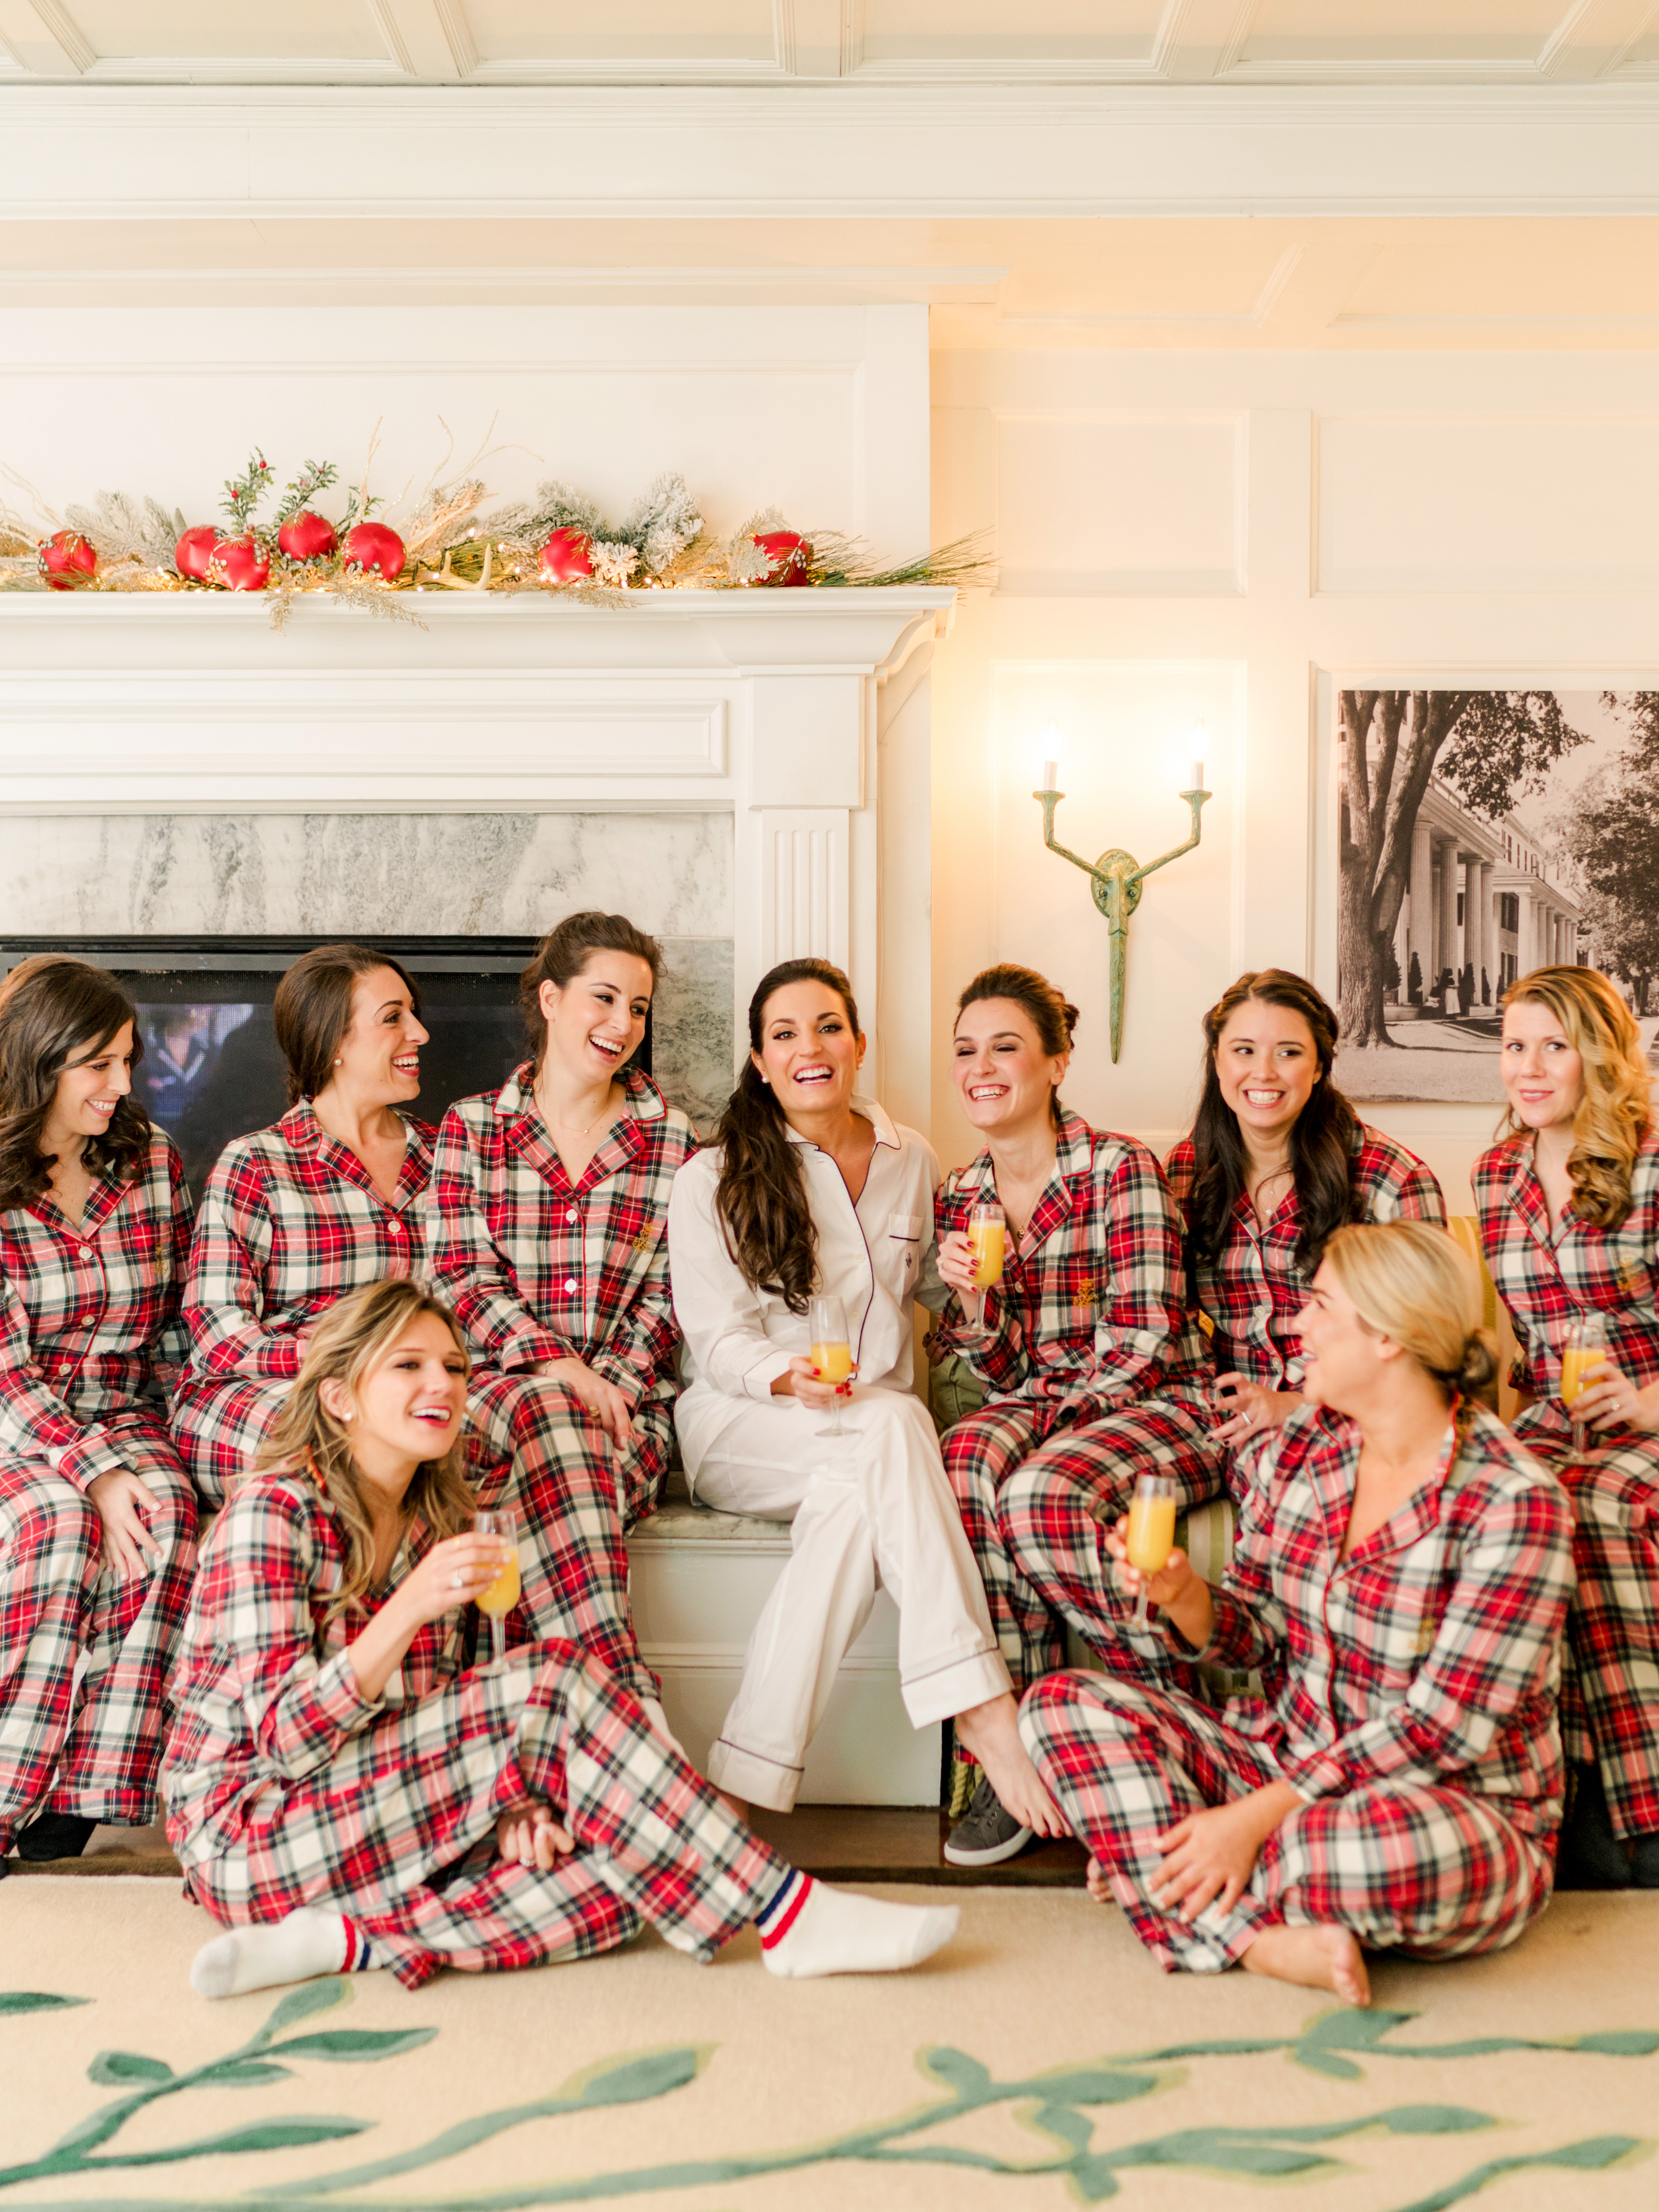 lauren christian christmas wedding plaid pajamas bride bridesmaids getting ready